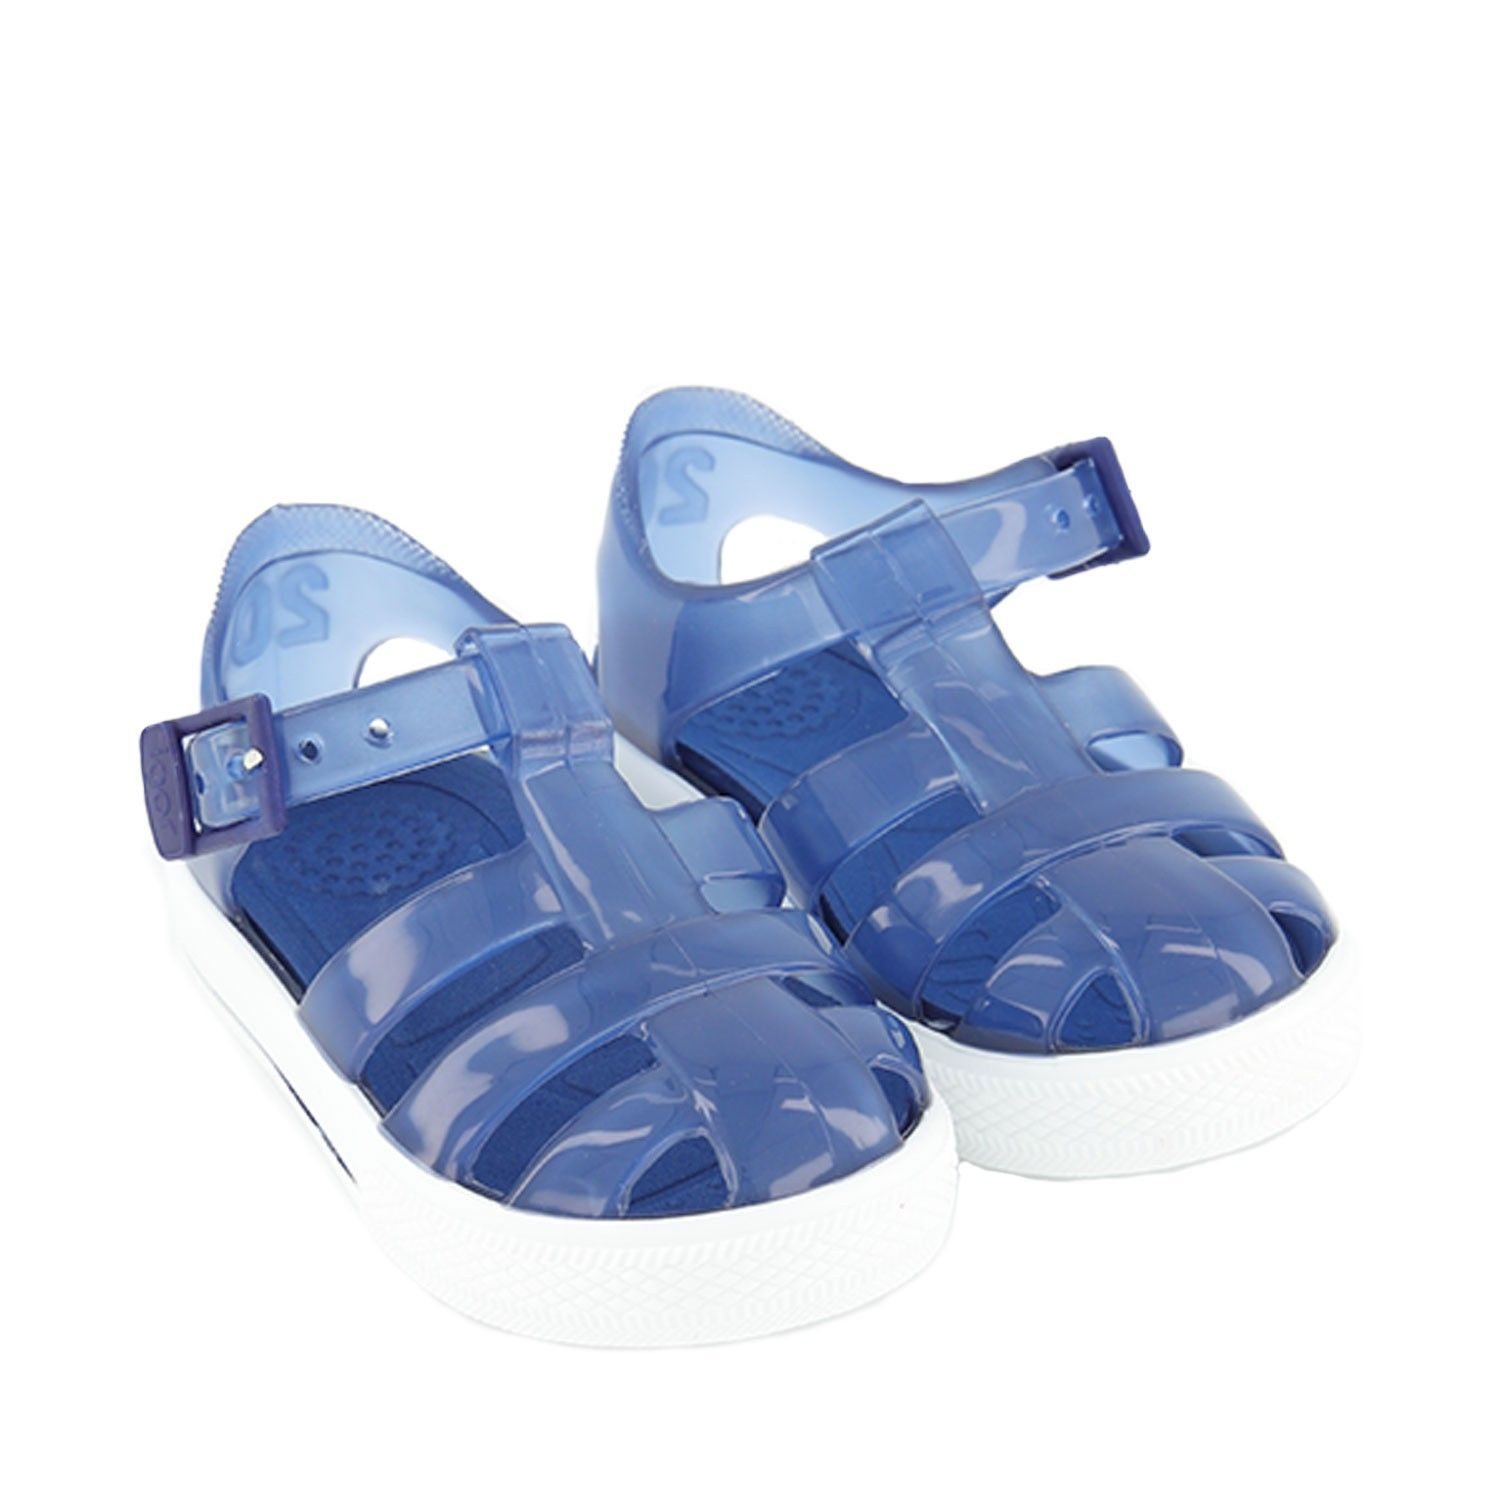 Picture of Igor S10107 kids sandals blue